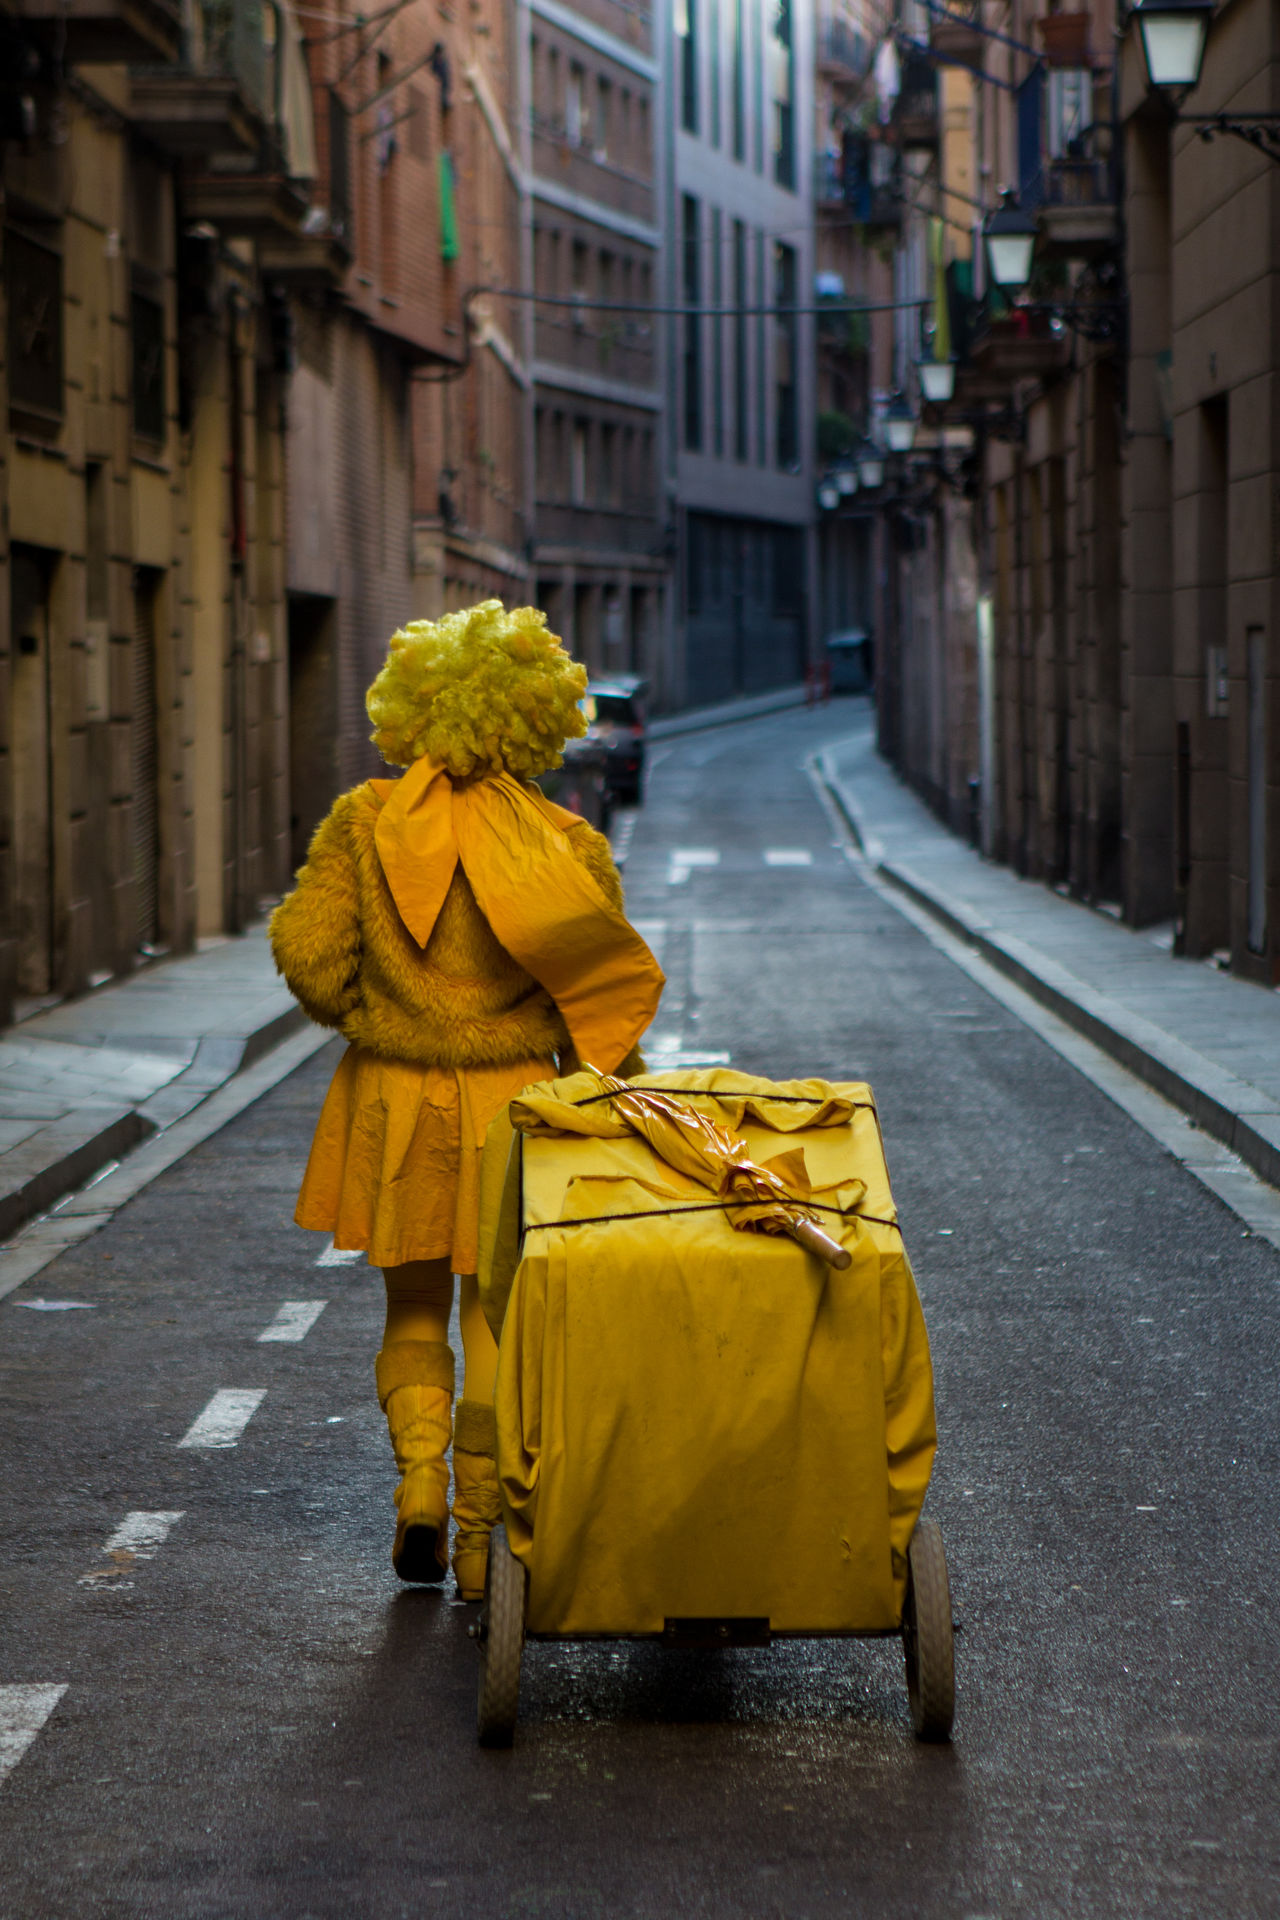 Full length rear view person in costume walking with push cart in alley amidst buildings